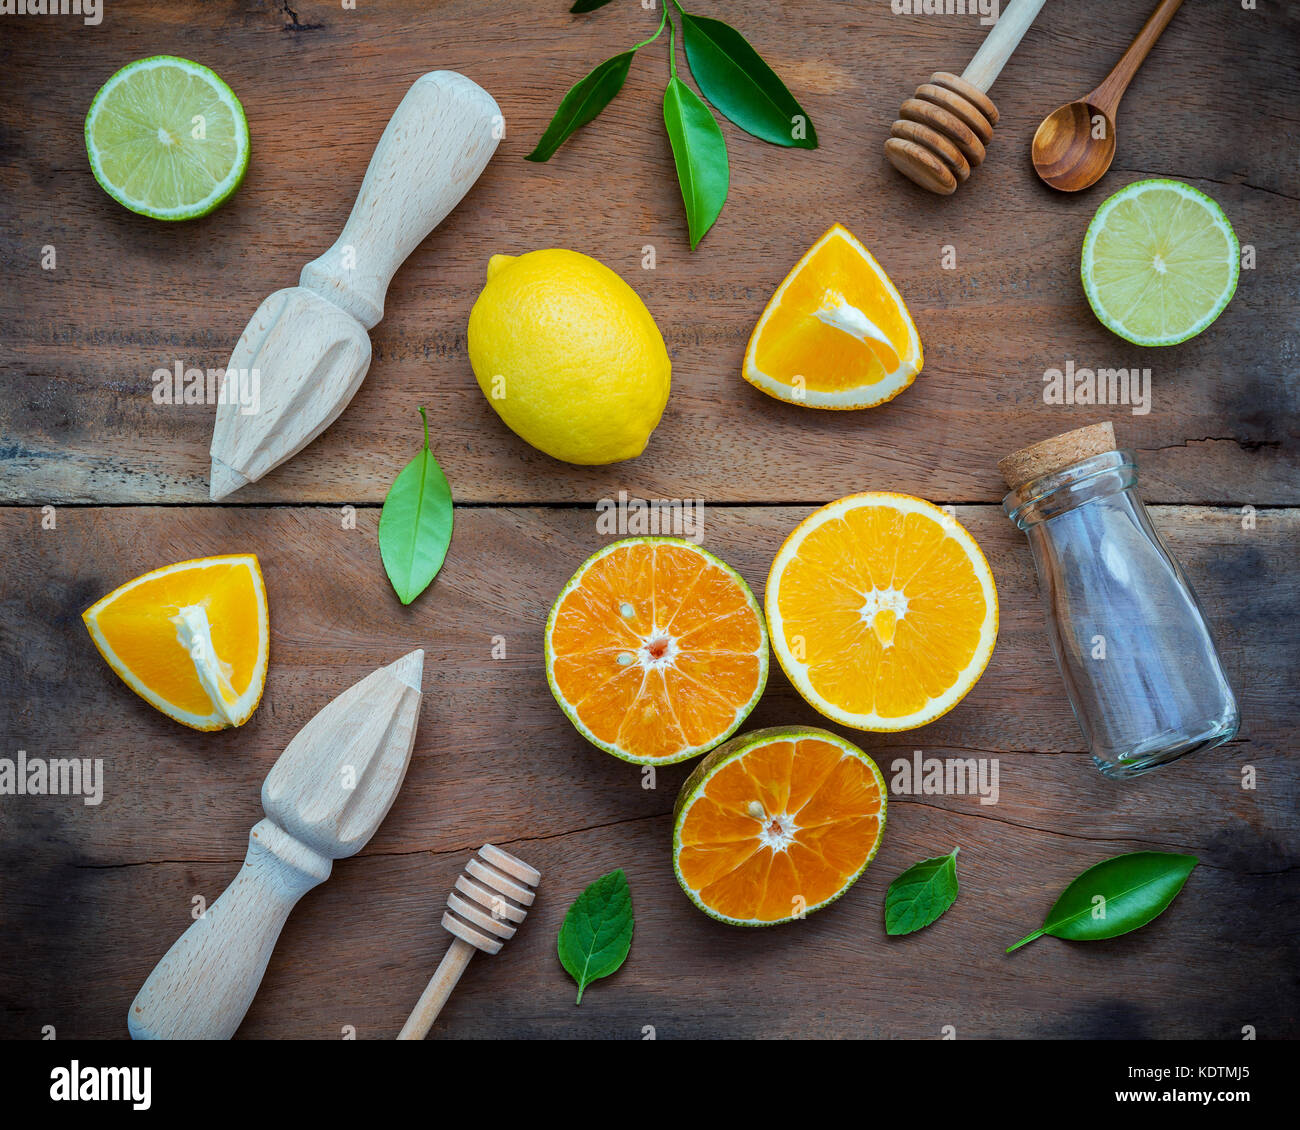 Mixed fresh citrus fruits and orange leaves background. Ingredients for summer citrus juice with juicer and glass - Stock Image